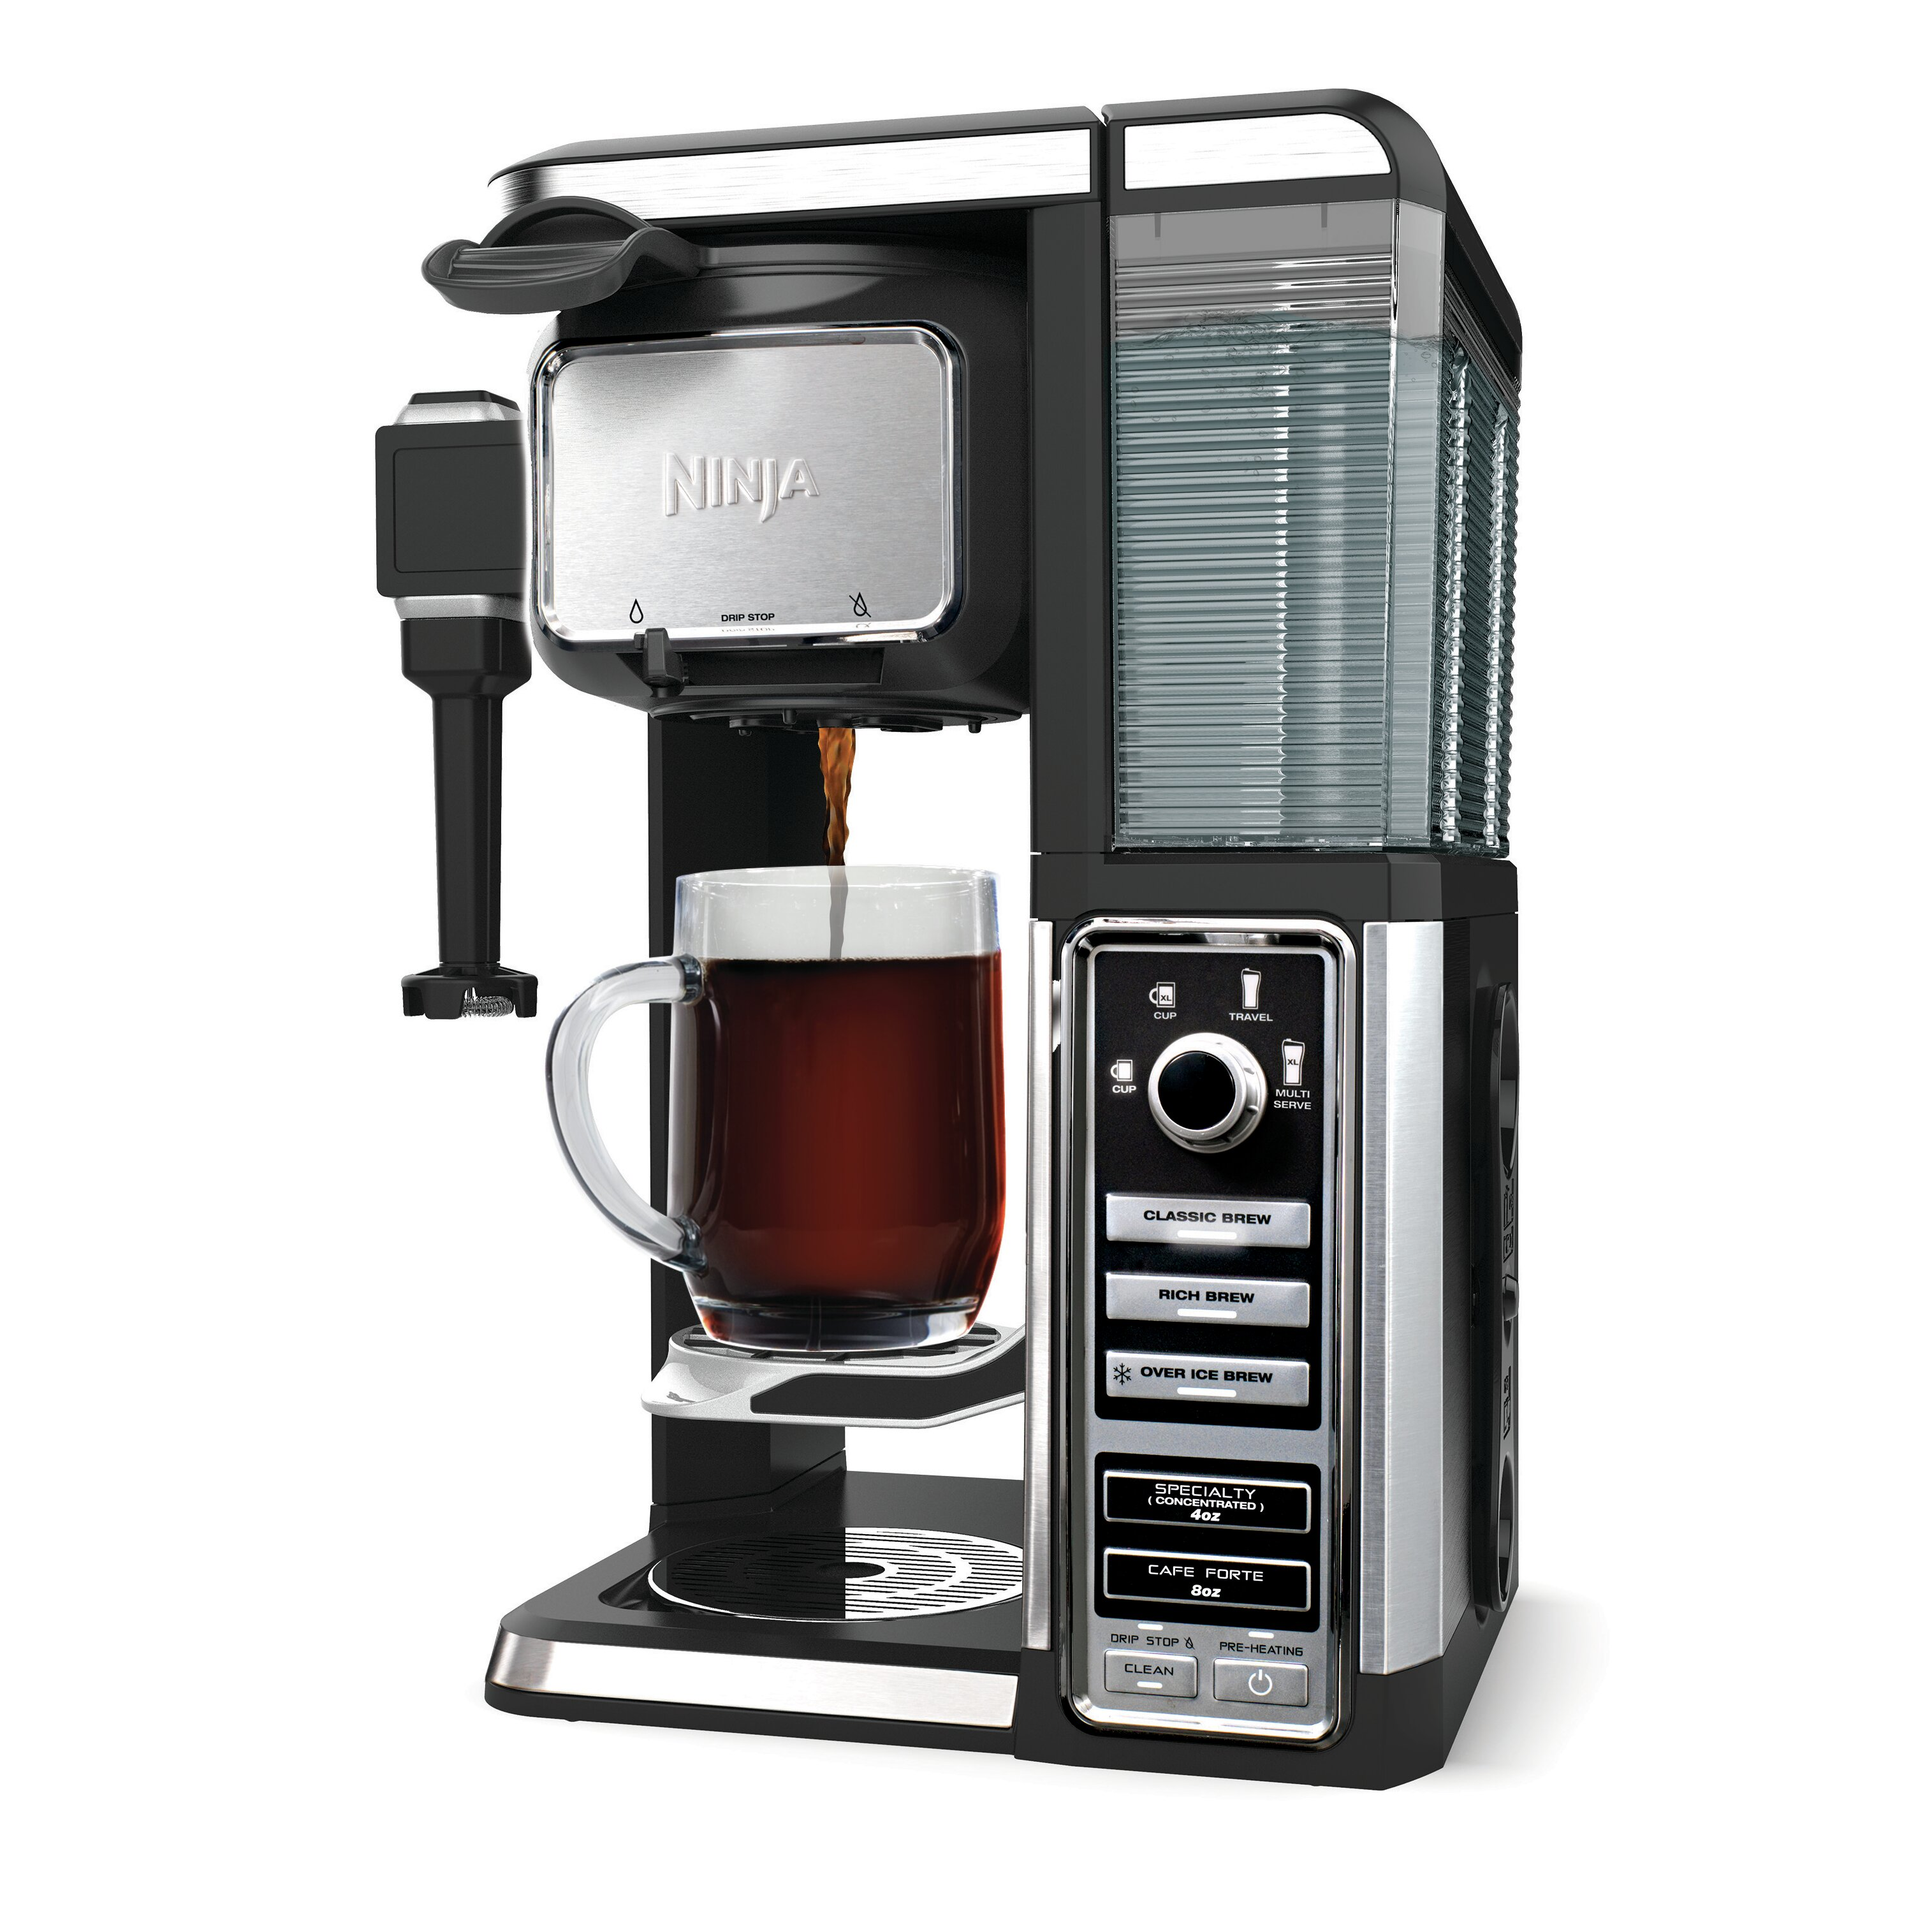 Ninja Single-Serve System Coffee Maker Wayfair